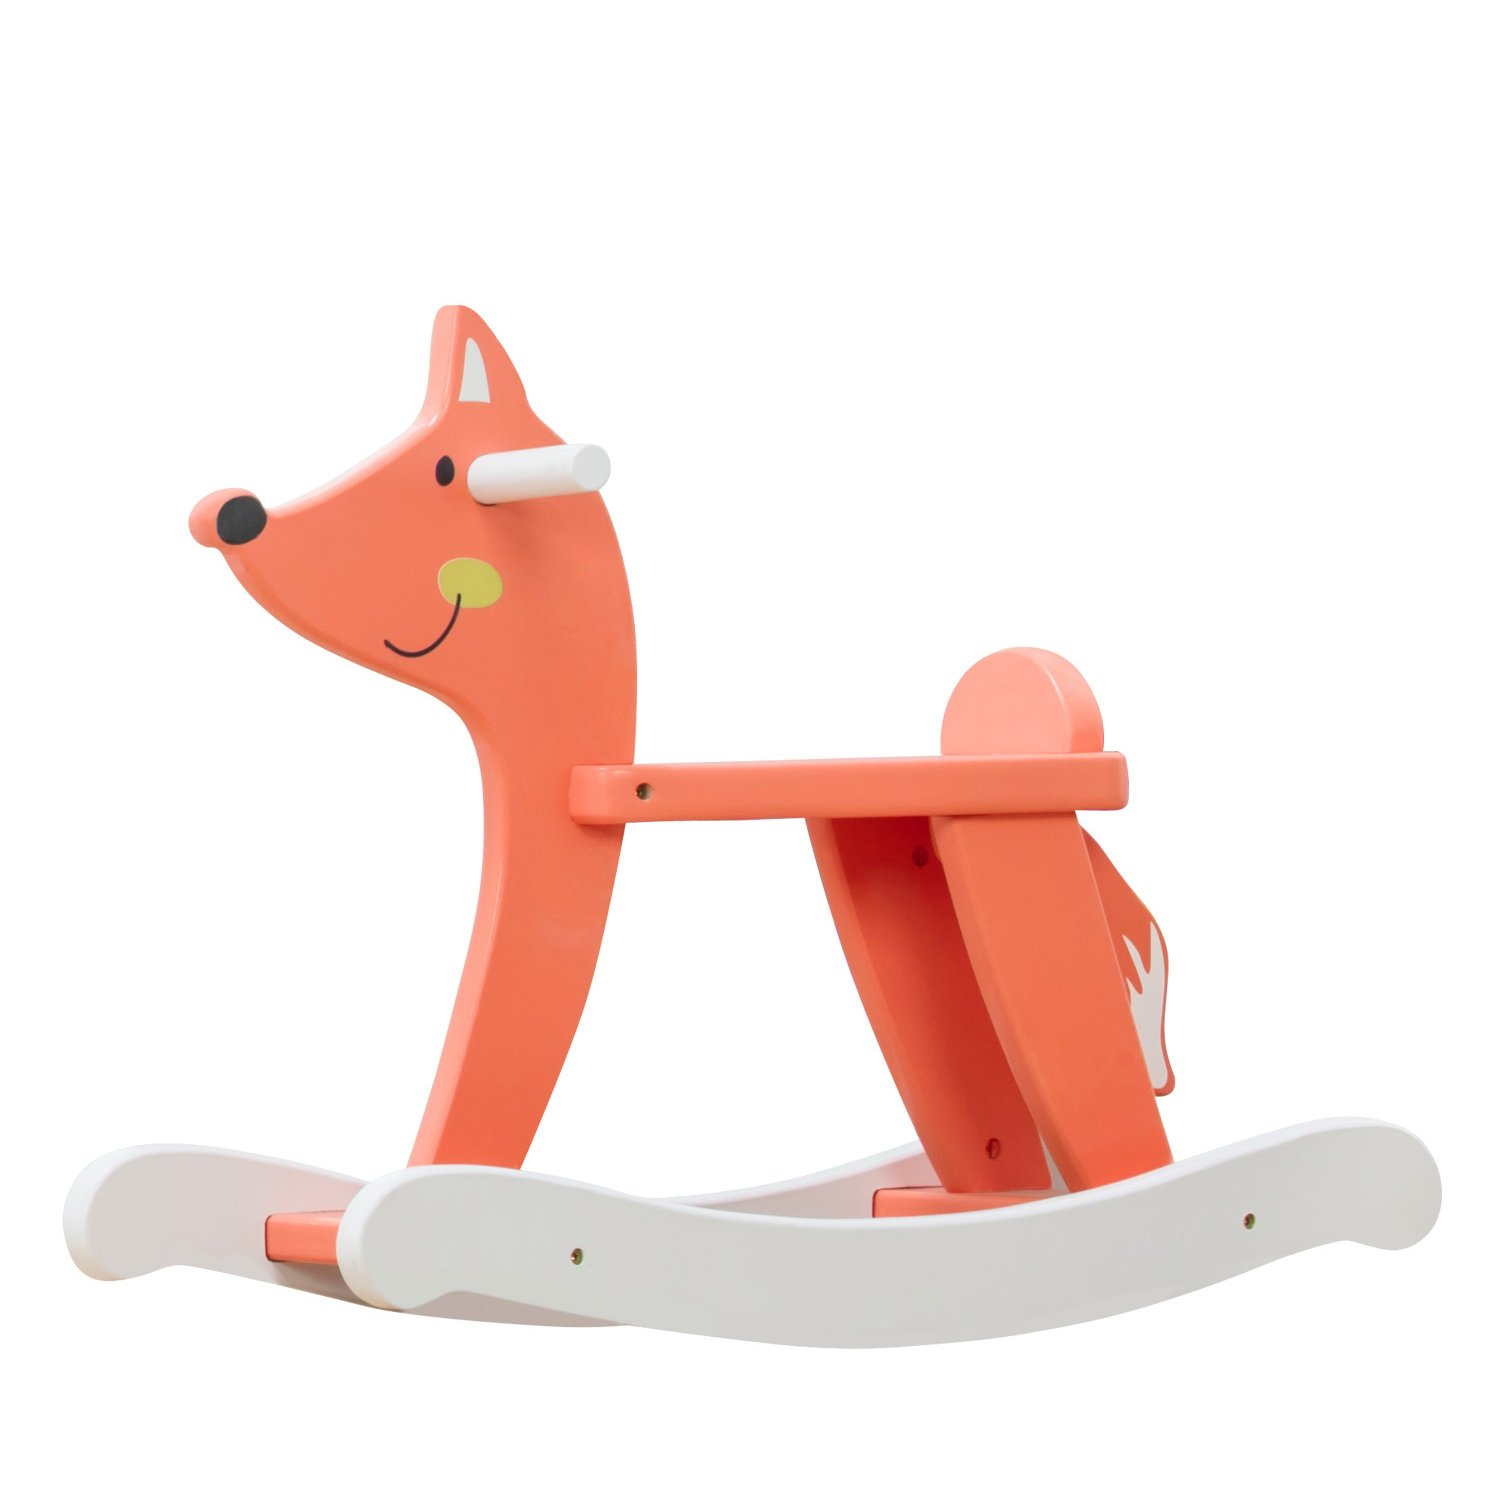 labebe - Baby Rocking Horse, Wooden Fox Rocker for 1-3 Year Old,